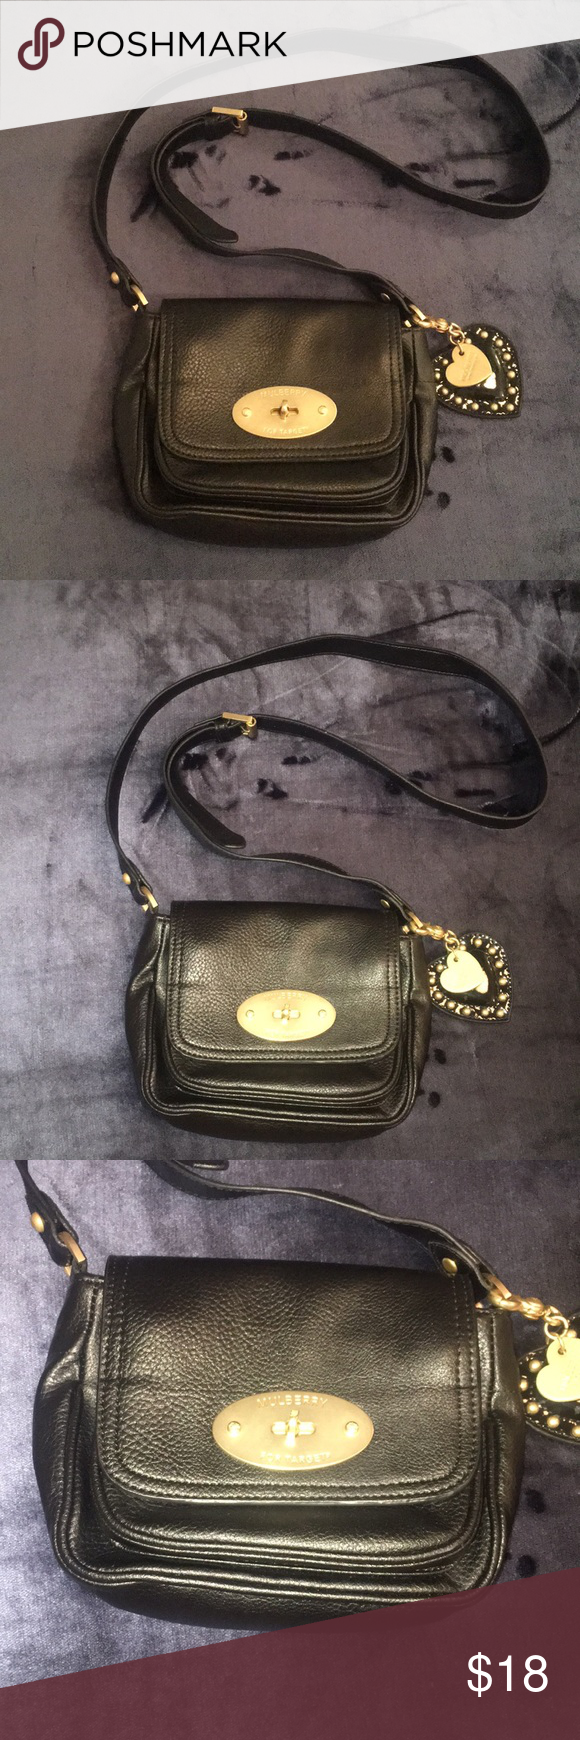 Mulberry for Target Crossbody Purse Black Mulberry for Target Crossbody Bag  Purse Excellent condition Black faux 86507802f2